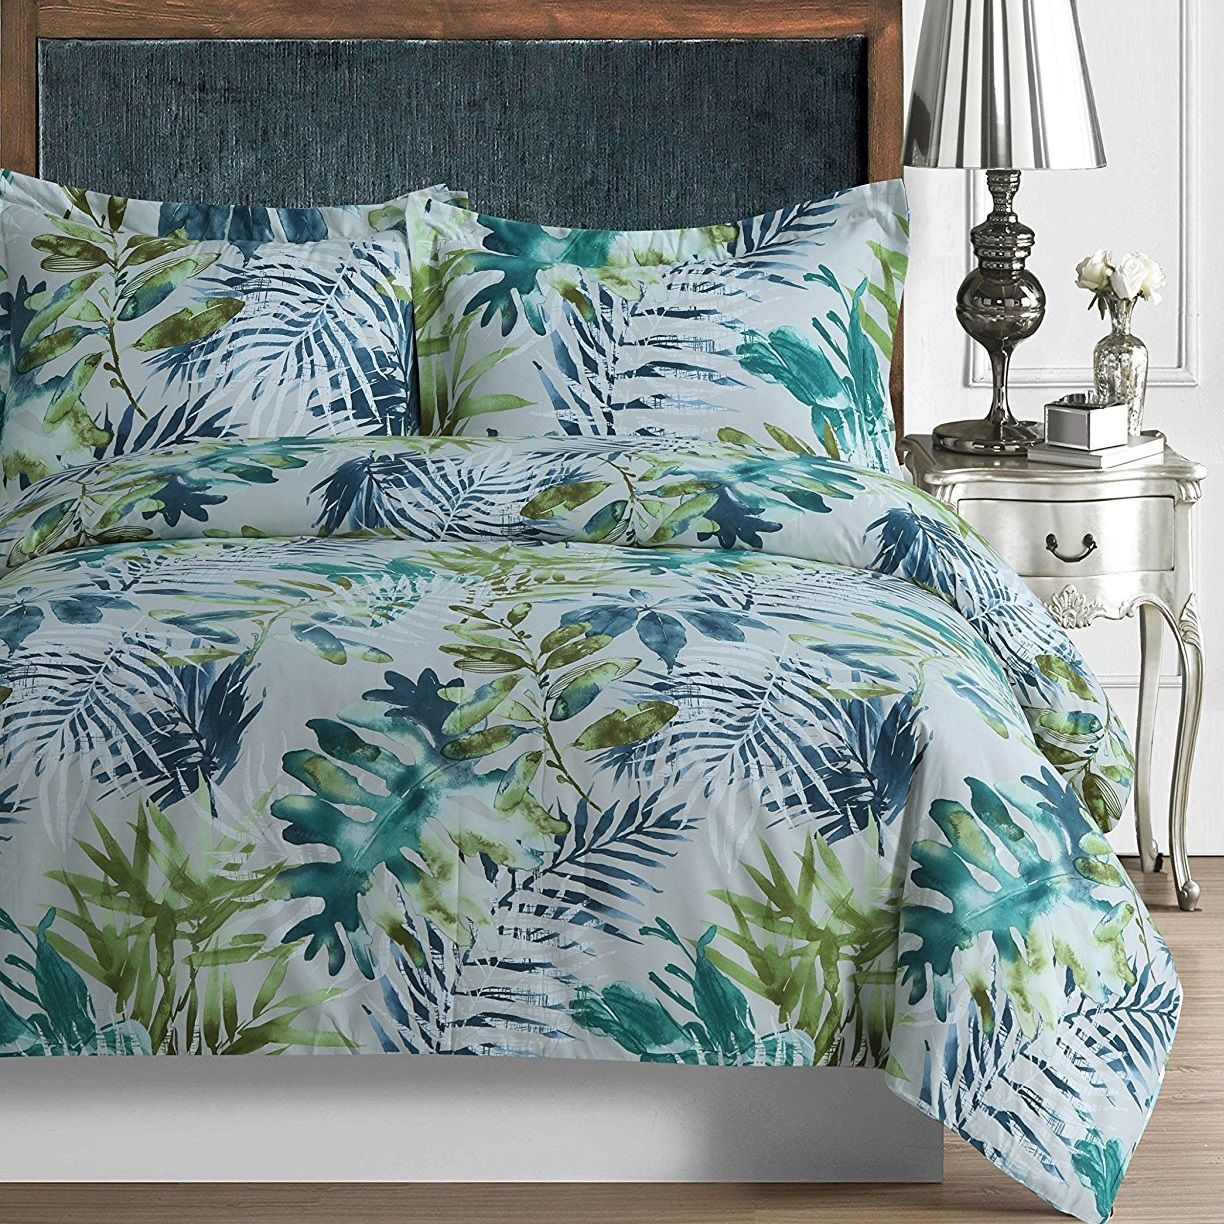 100 Tropical Bedding Sets And Tropical Comforters For 2020 Beachfront Decor Tropical Bedding Sets Tropical Bedding Duvet Cover Sets